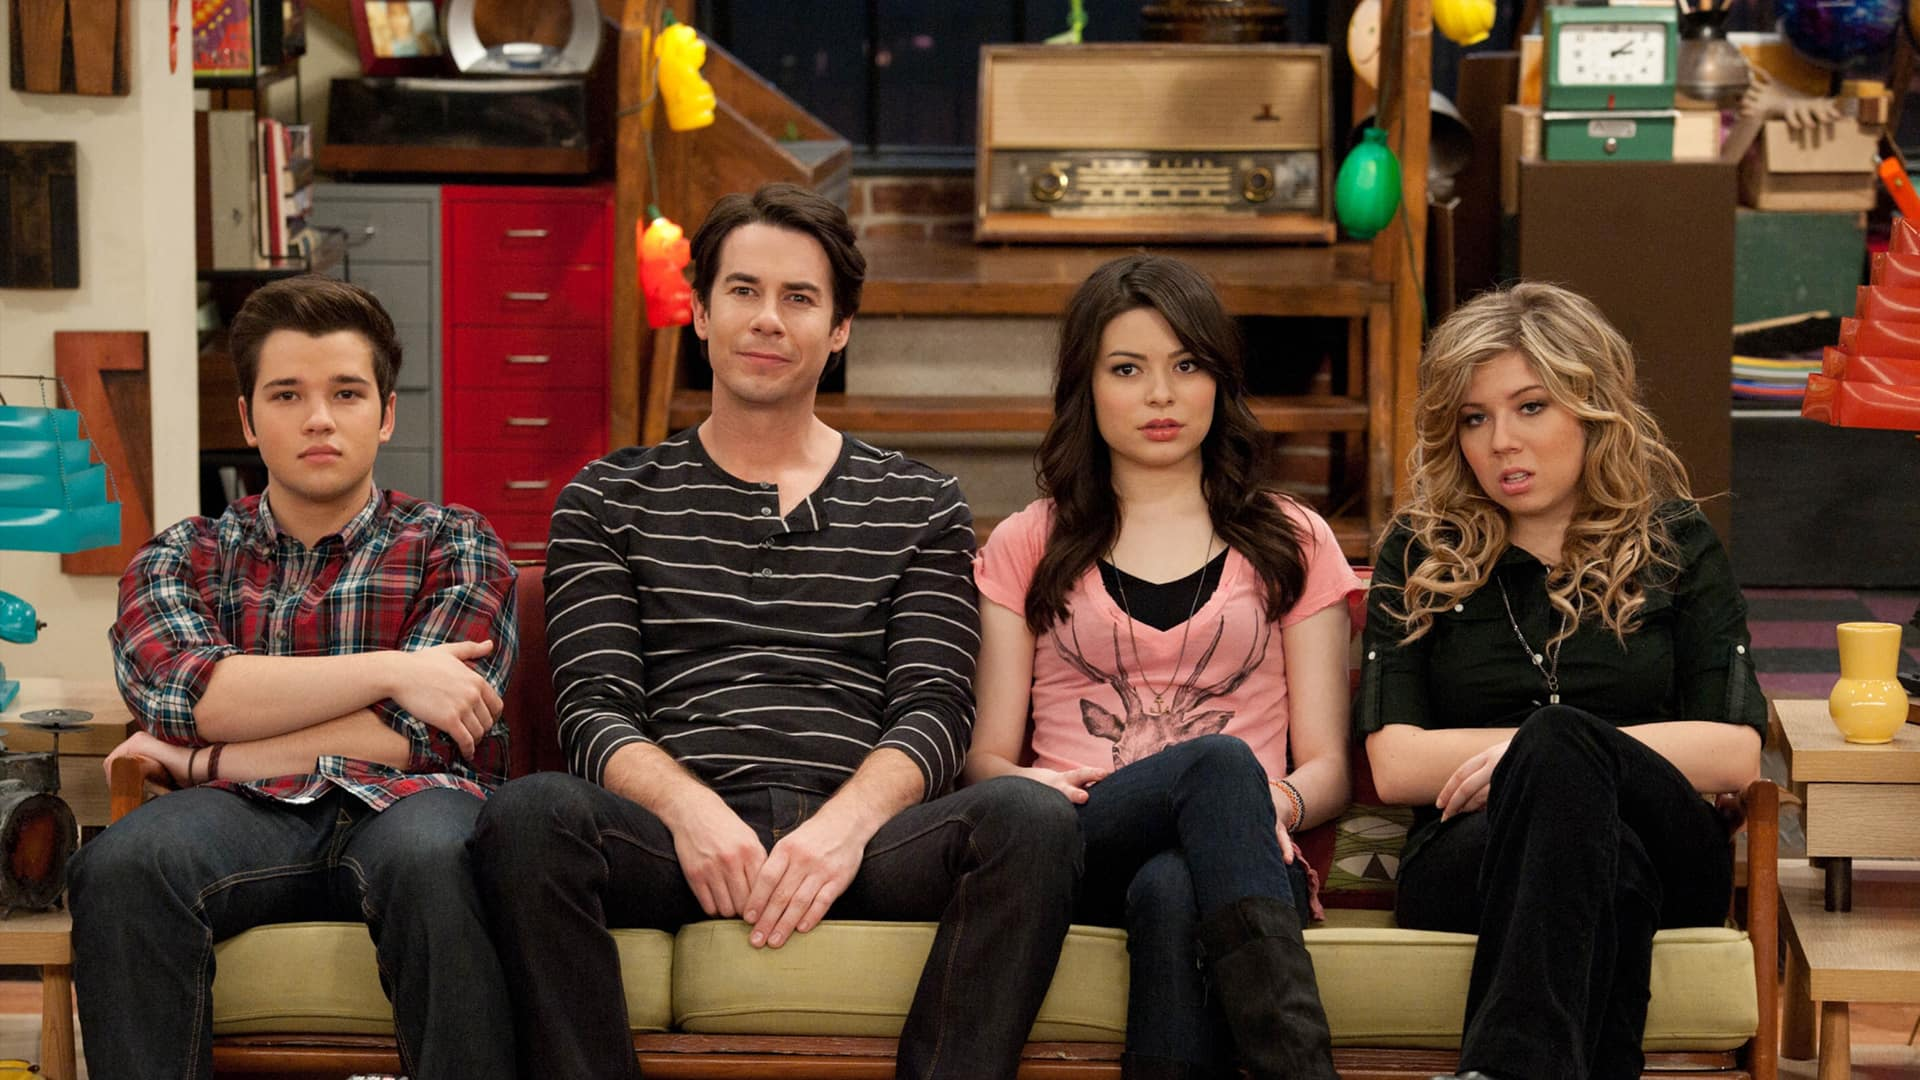 Sam från iCarly dating svart kille